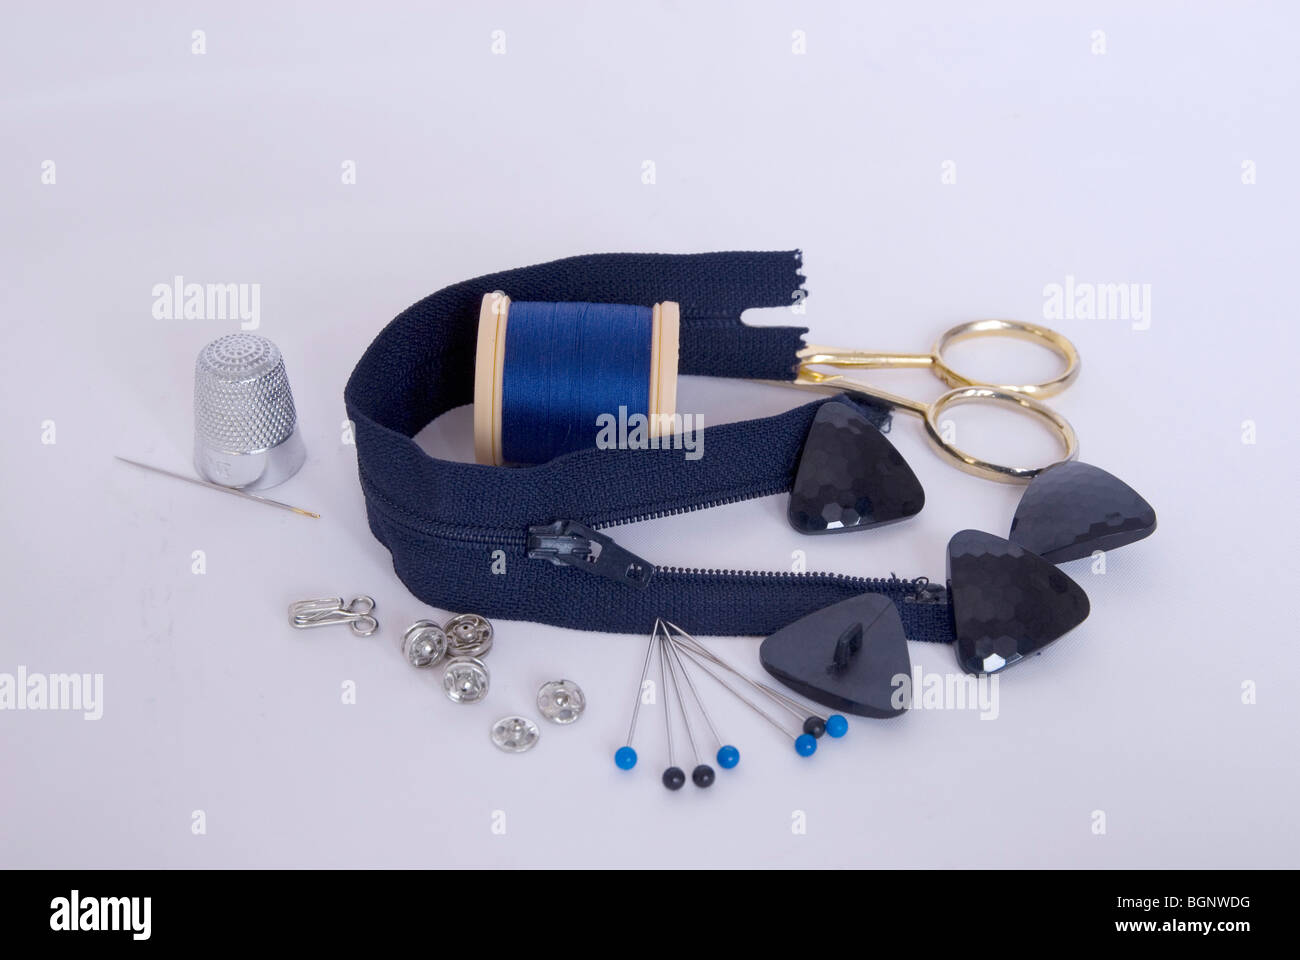 Sewing implements - Stock Image